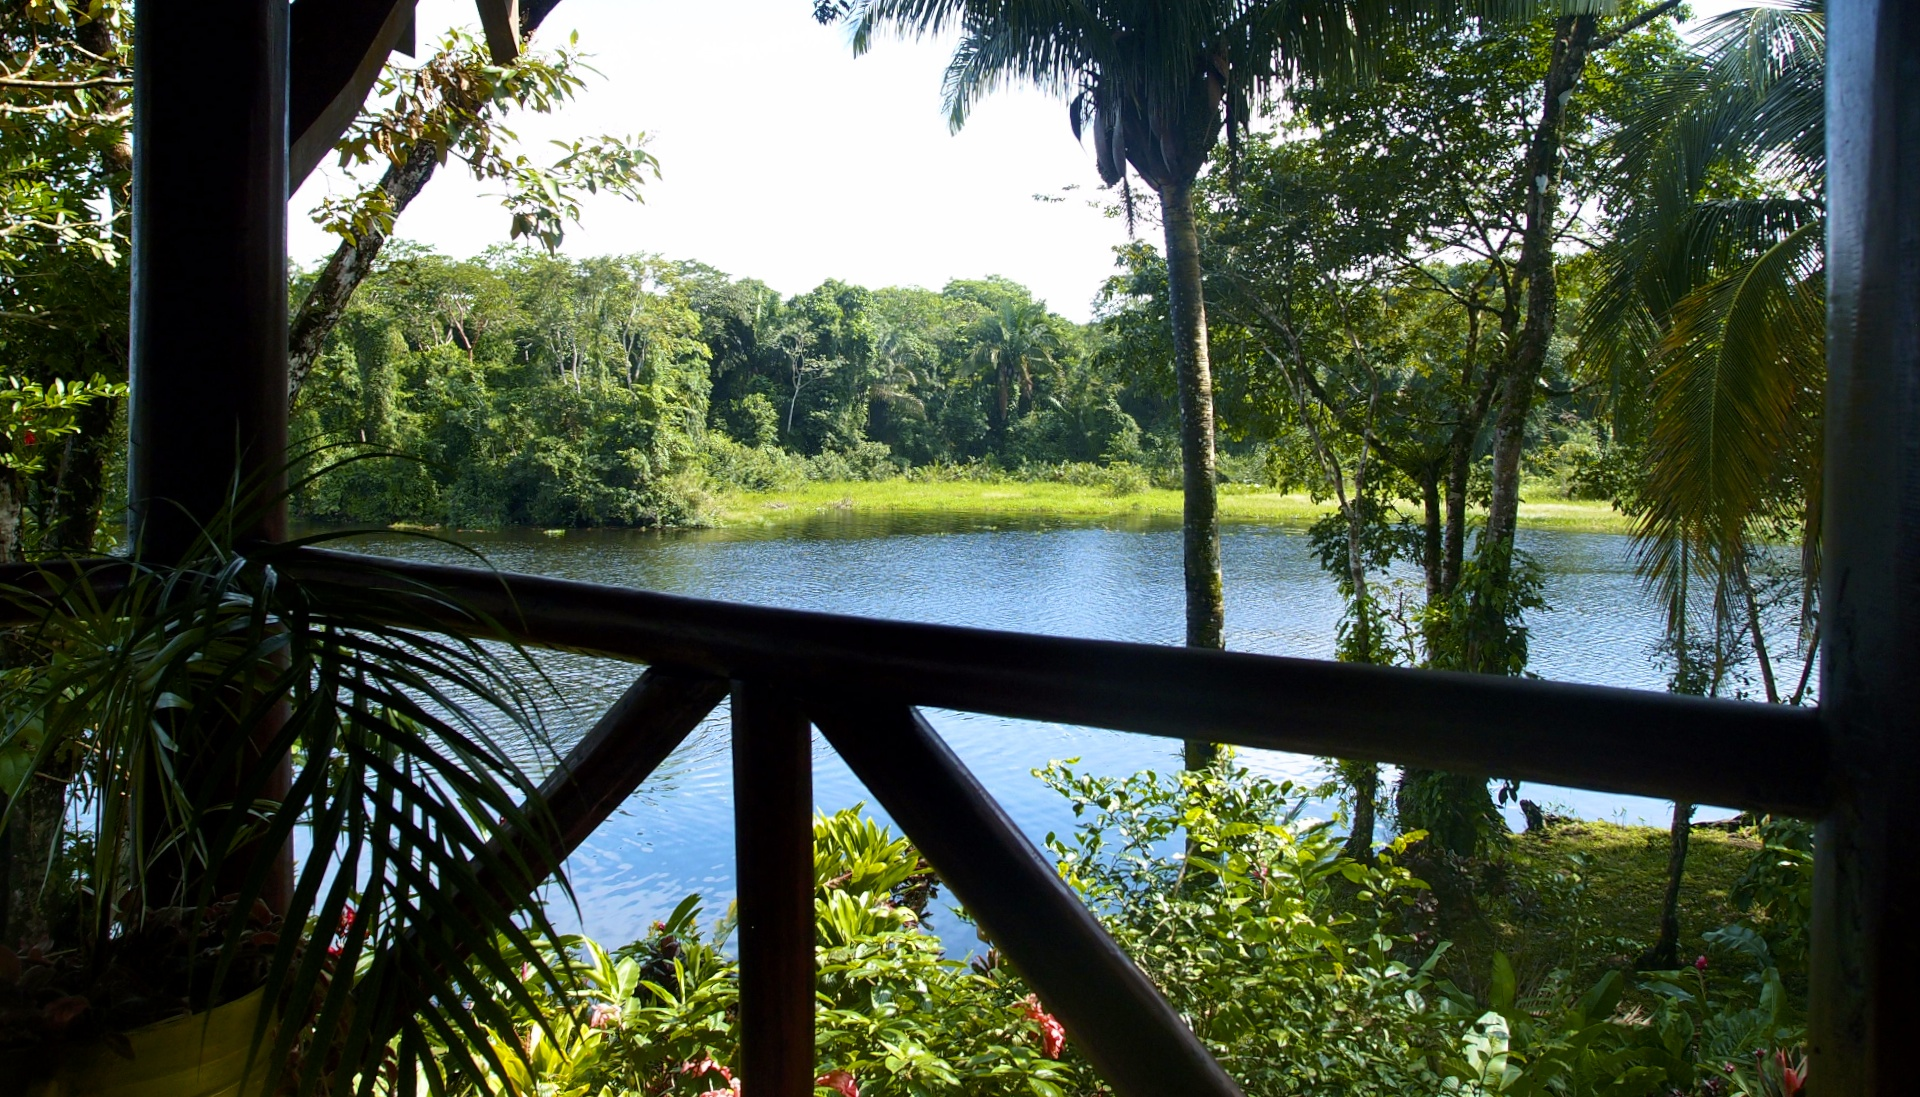 River views while on Birdwatching in Nicaragua